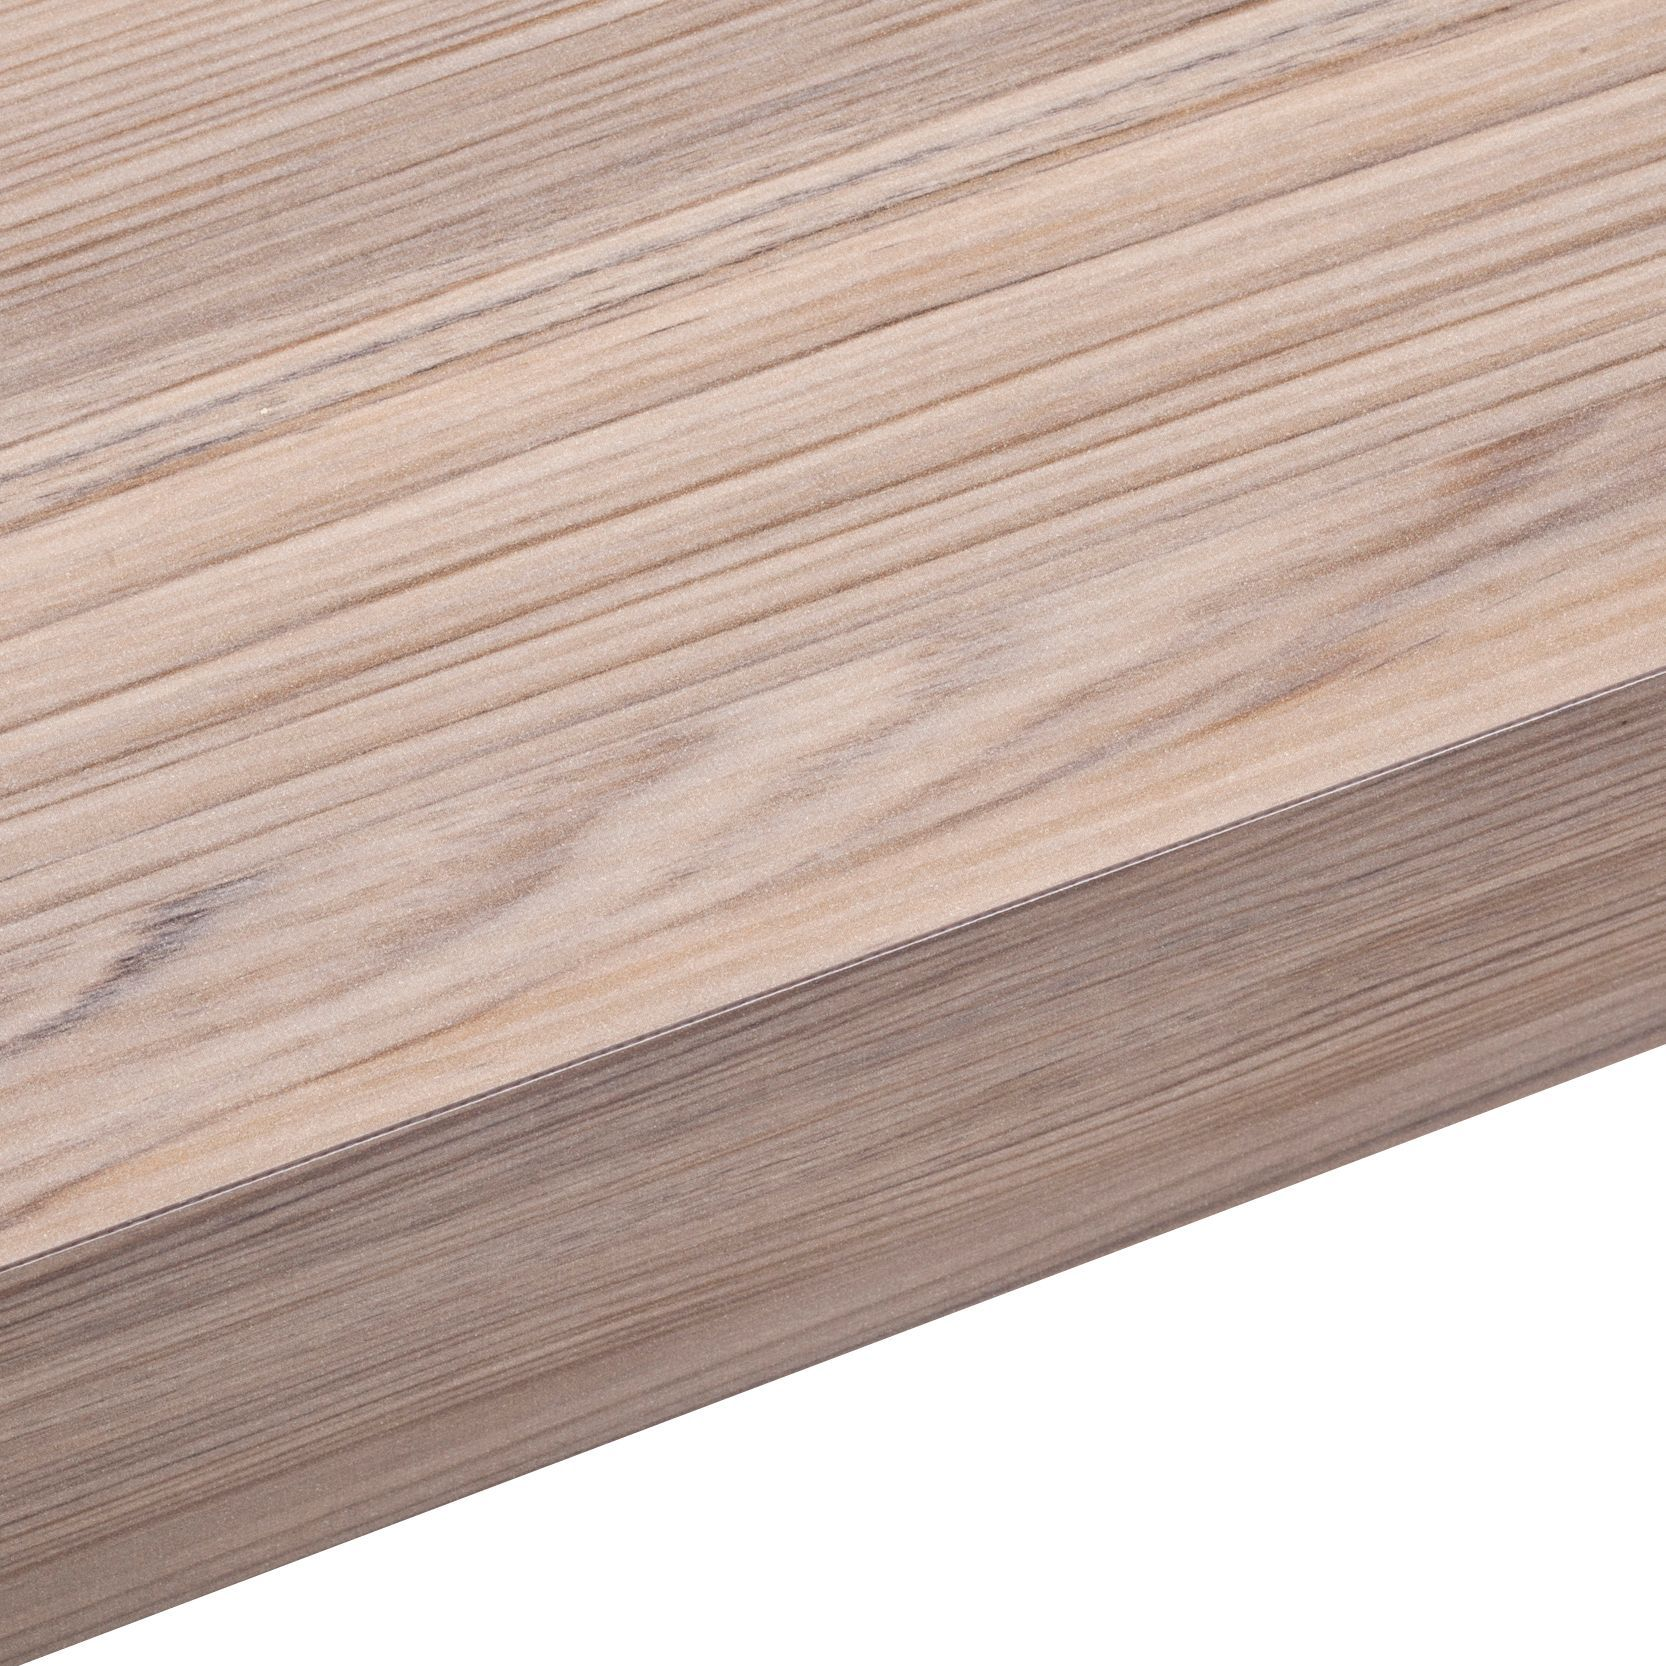 50mm Cypress Cinnamon Laminate Wood Effect Square Edge